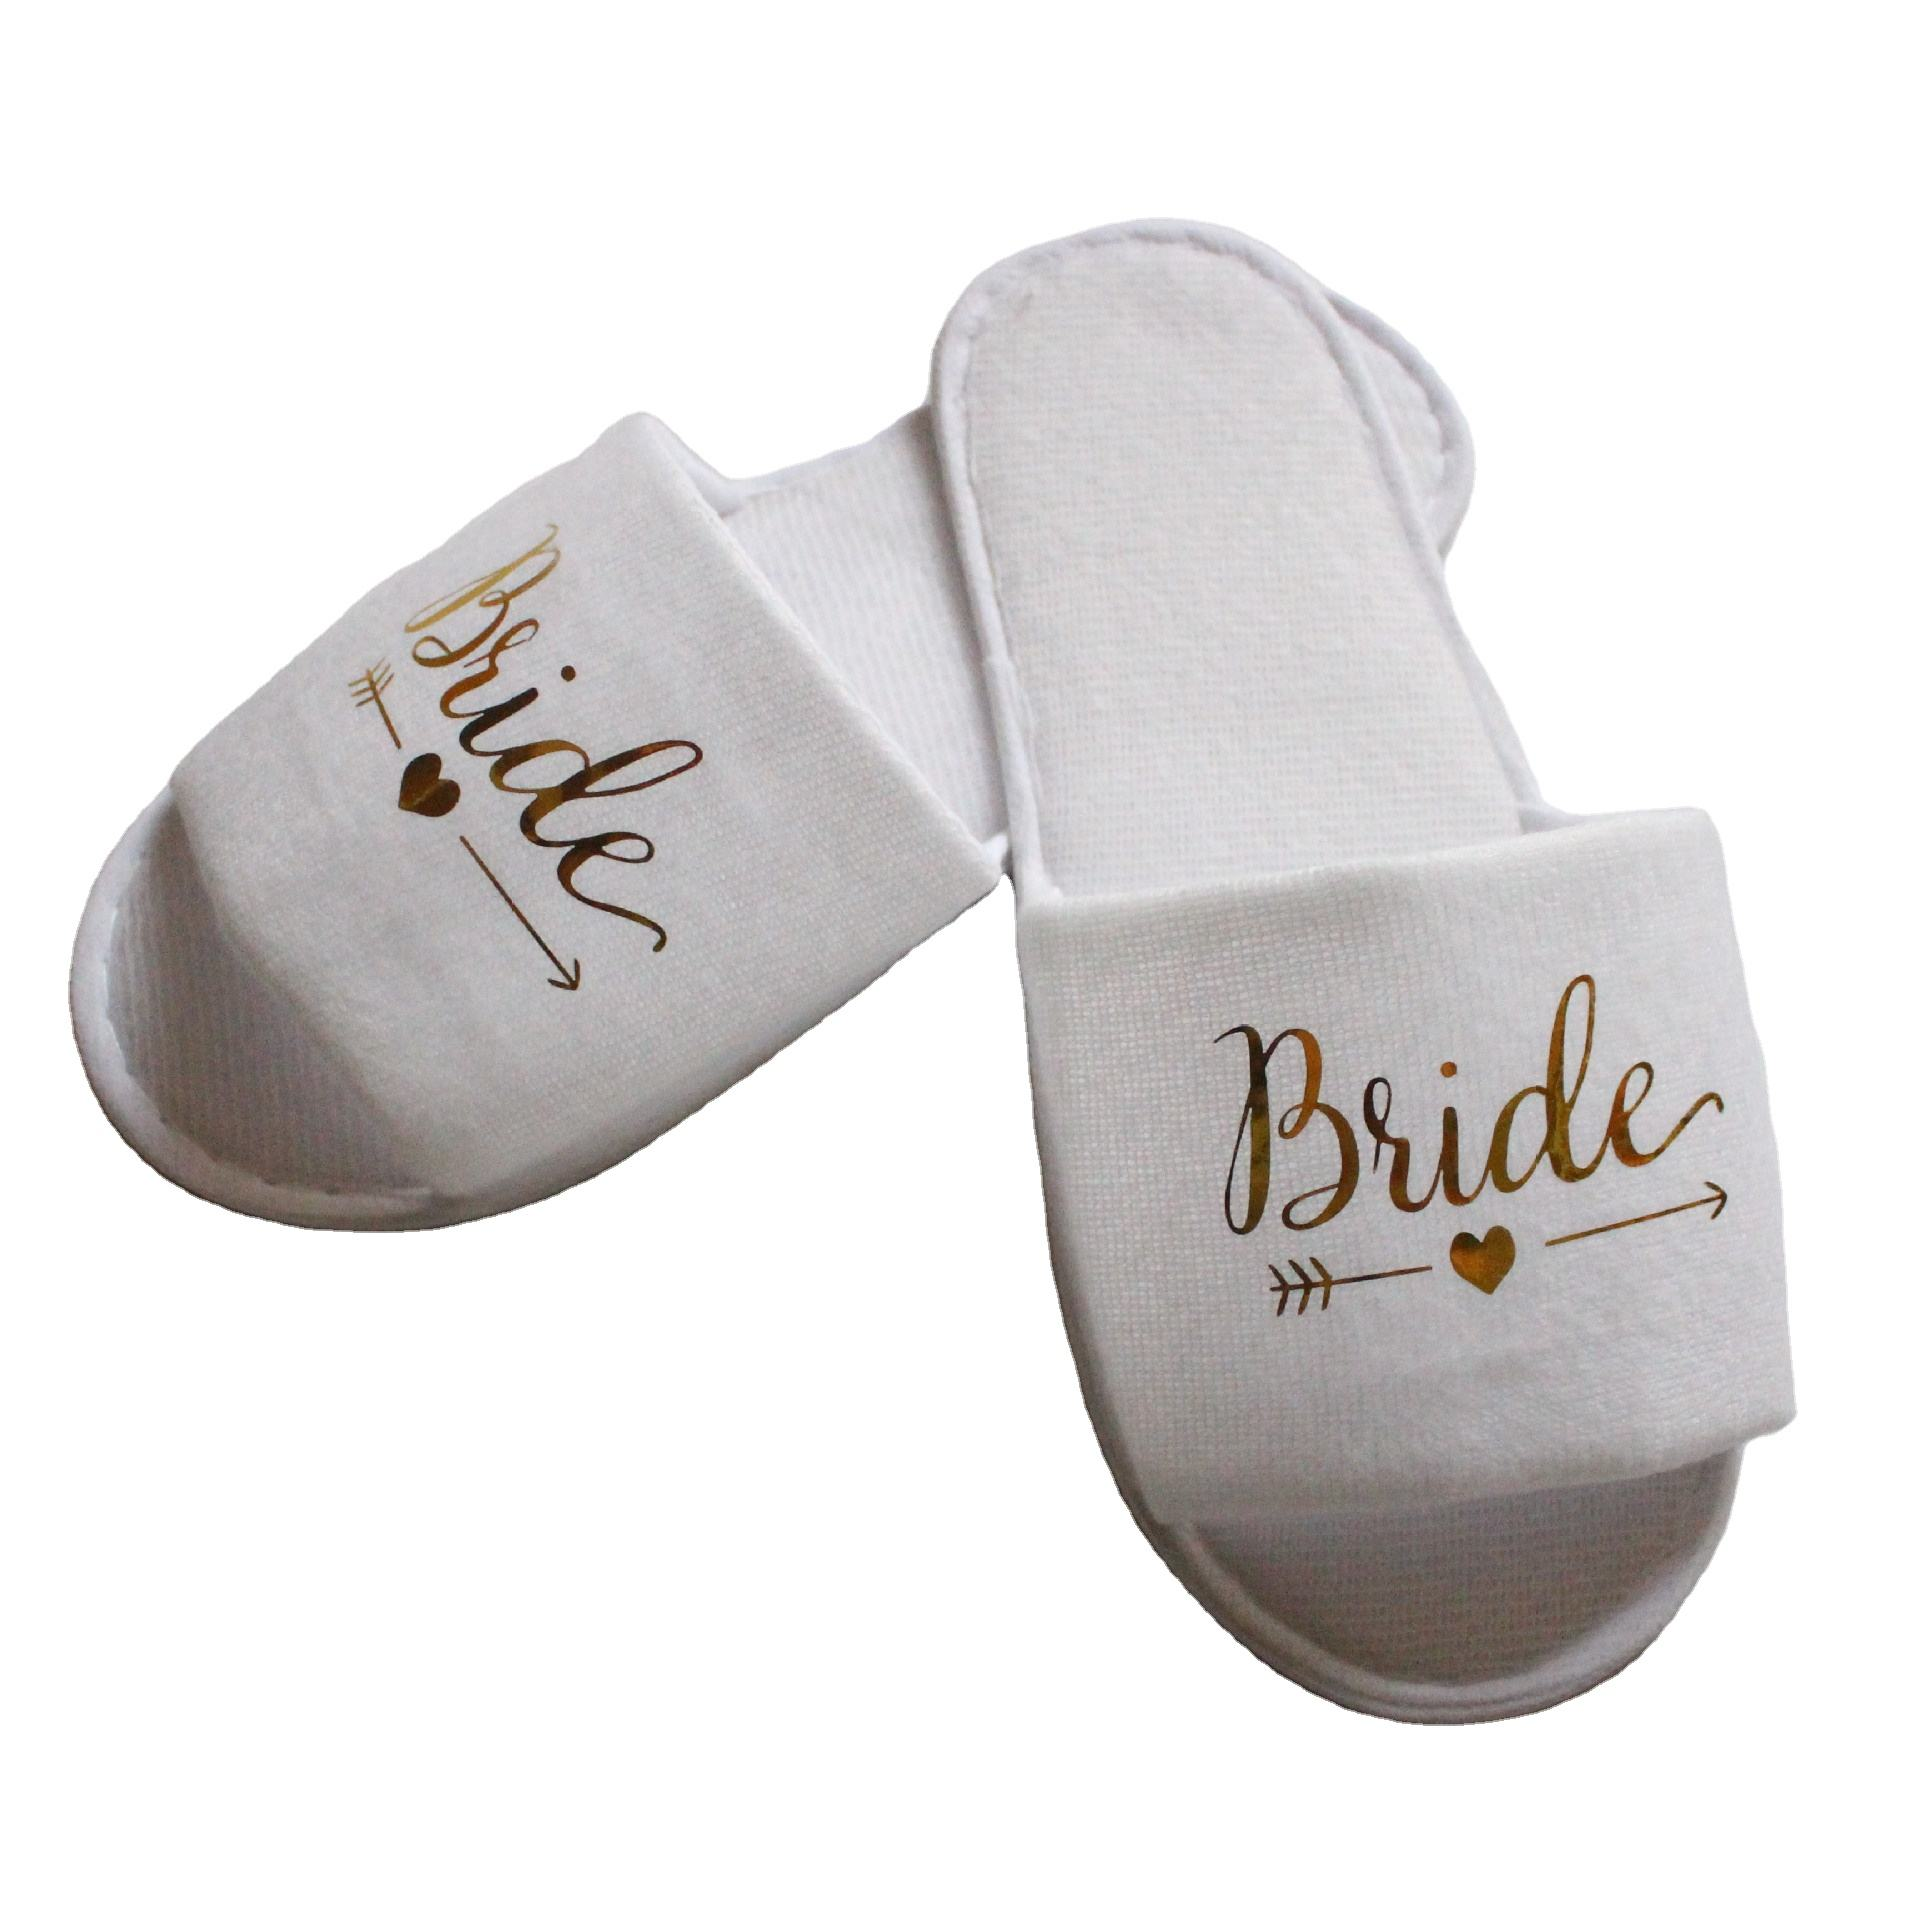 Wedding Bride Slippers Disposable Items Bride Letter Bright Font Shoes